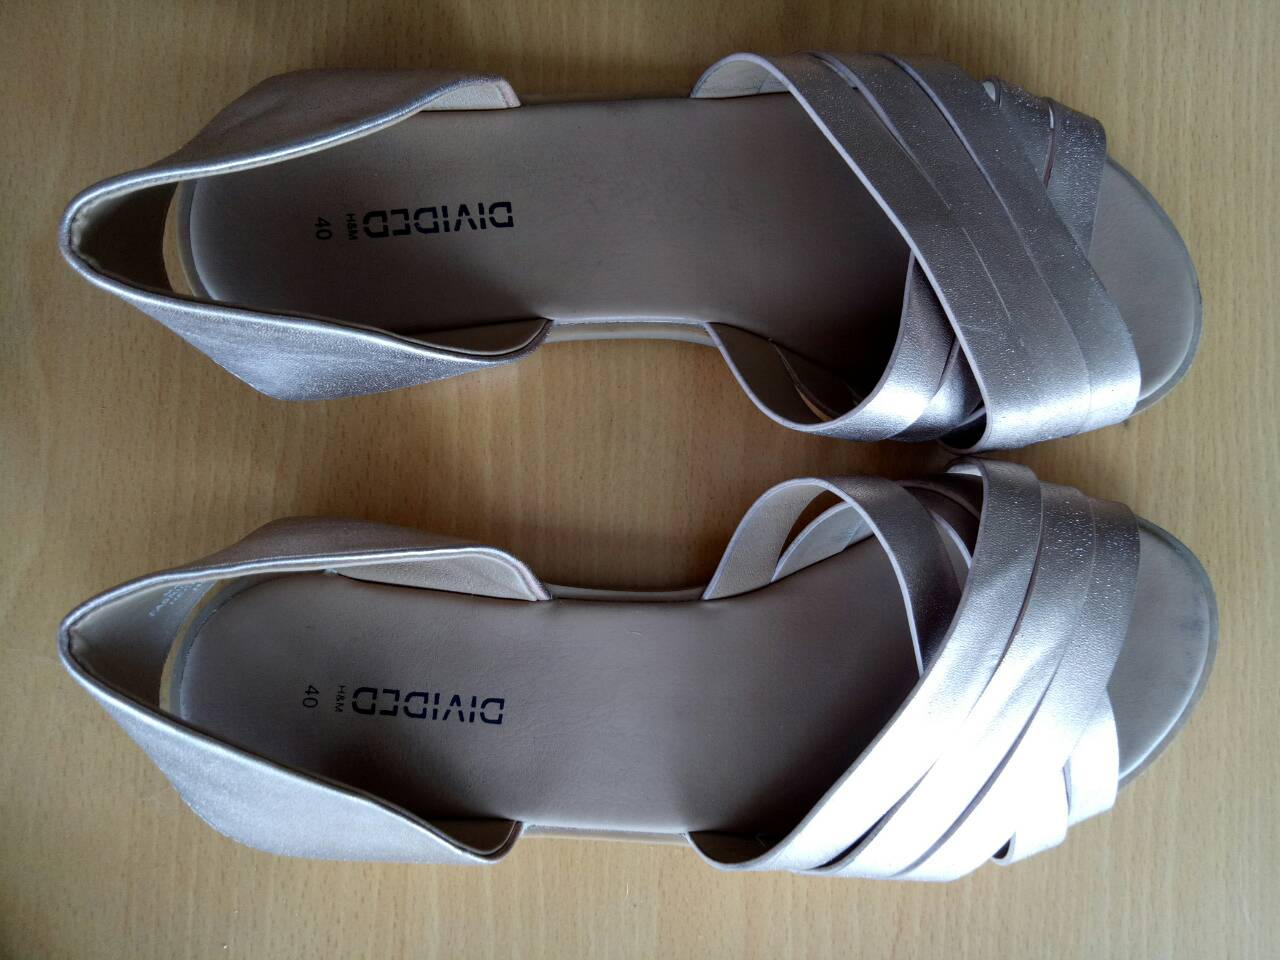 H&M DIVIDED SIZE 40